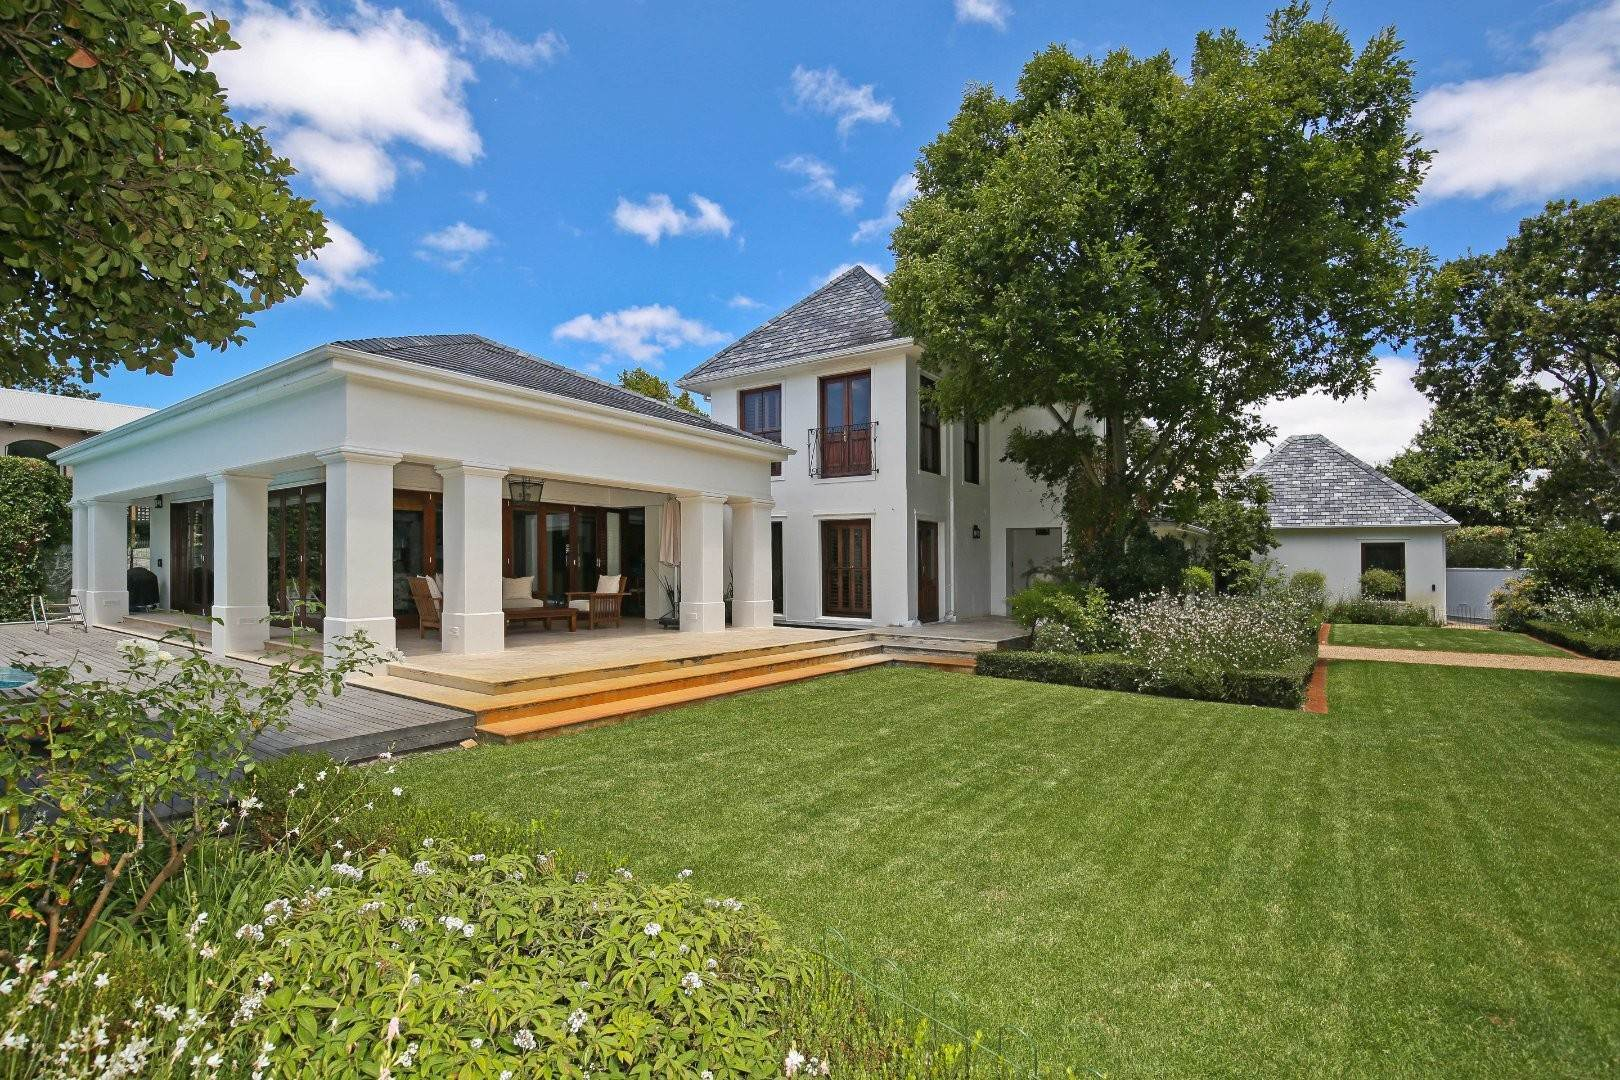 Single Family Home for Sale at Quality living at its very best! Rondebosch, Cape Town, Western Cape, South Africa